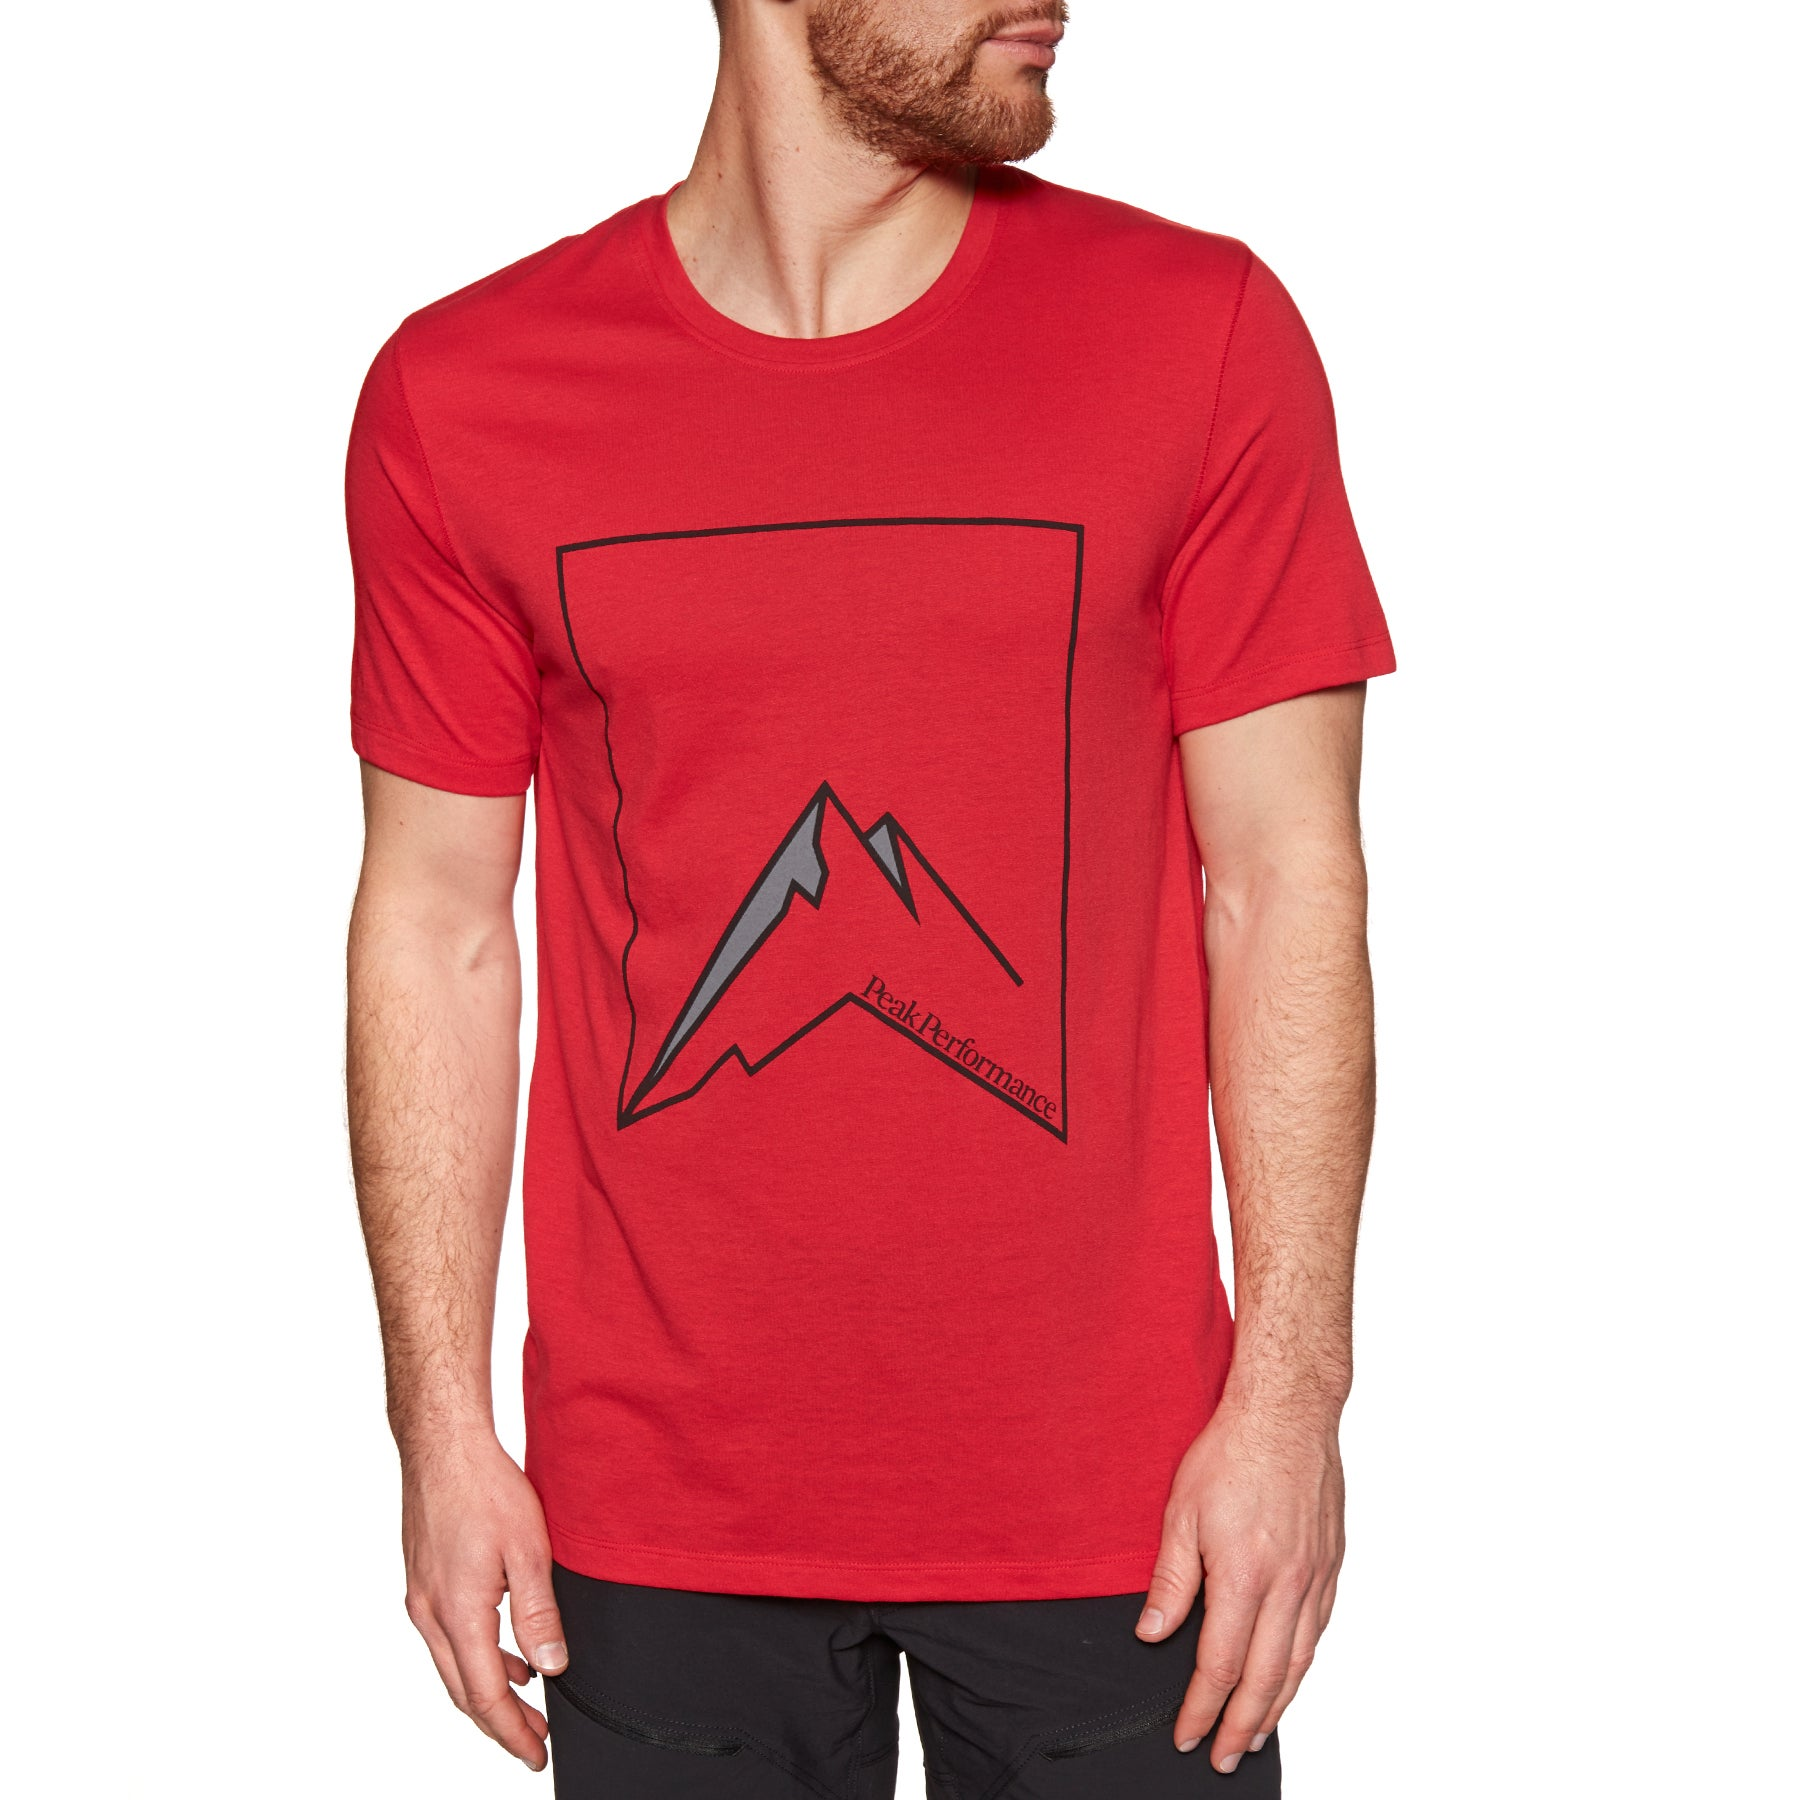 T-Shirt de Manga Curta Peak Performance Explore Mountain Outdoor - Chinese Red